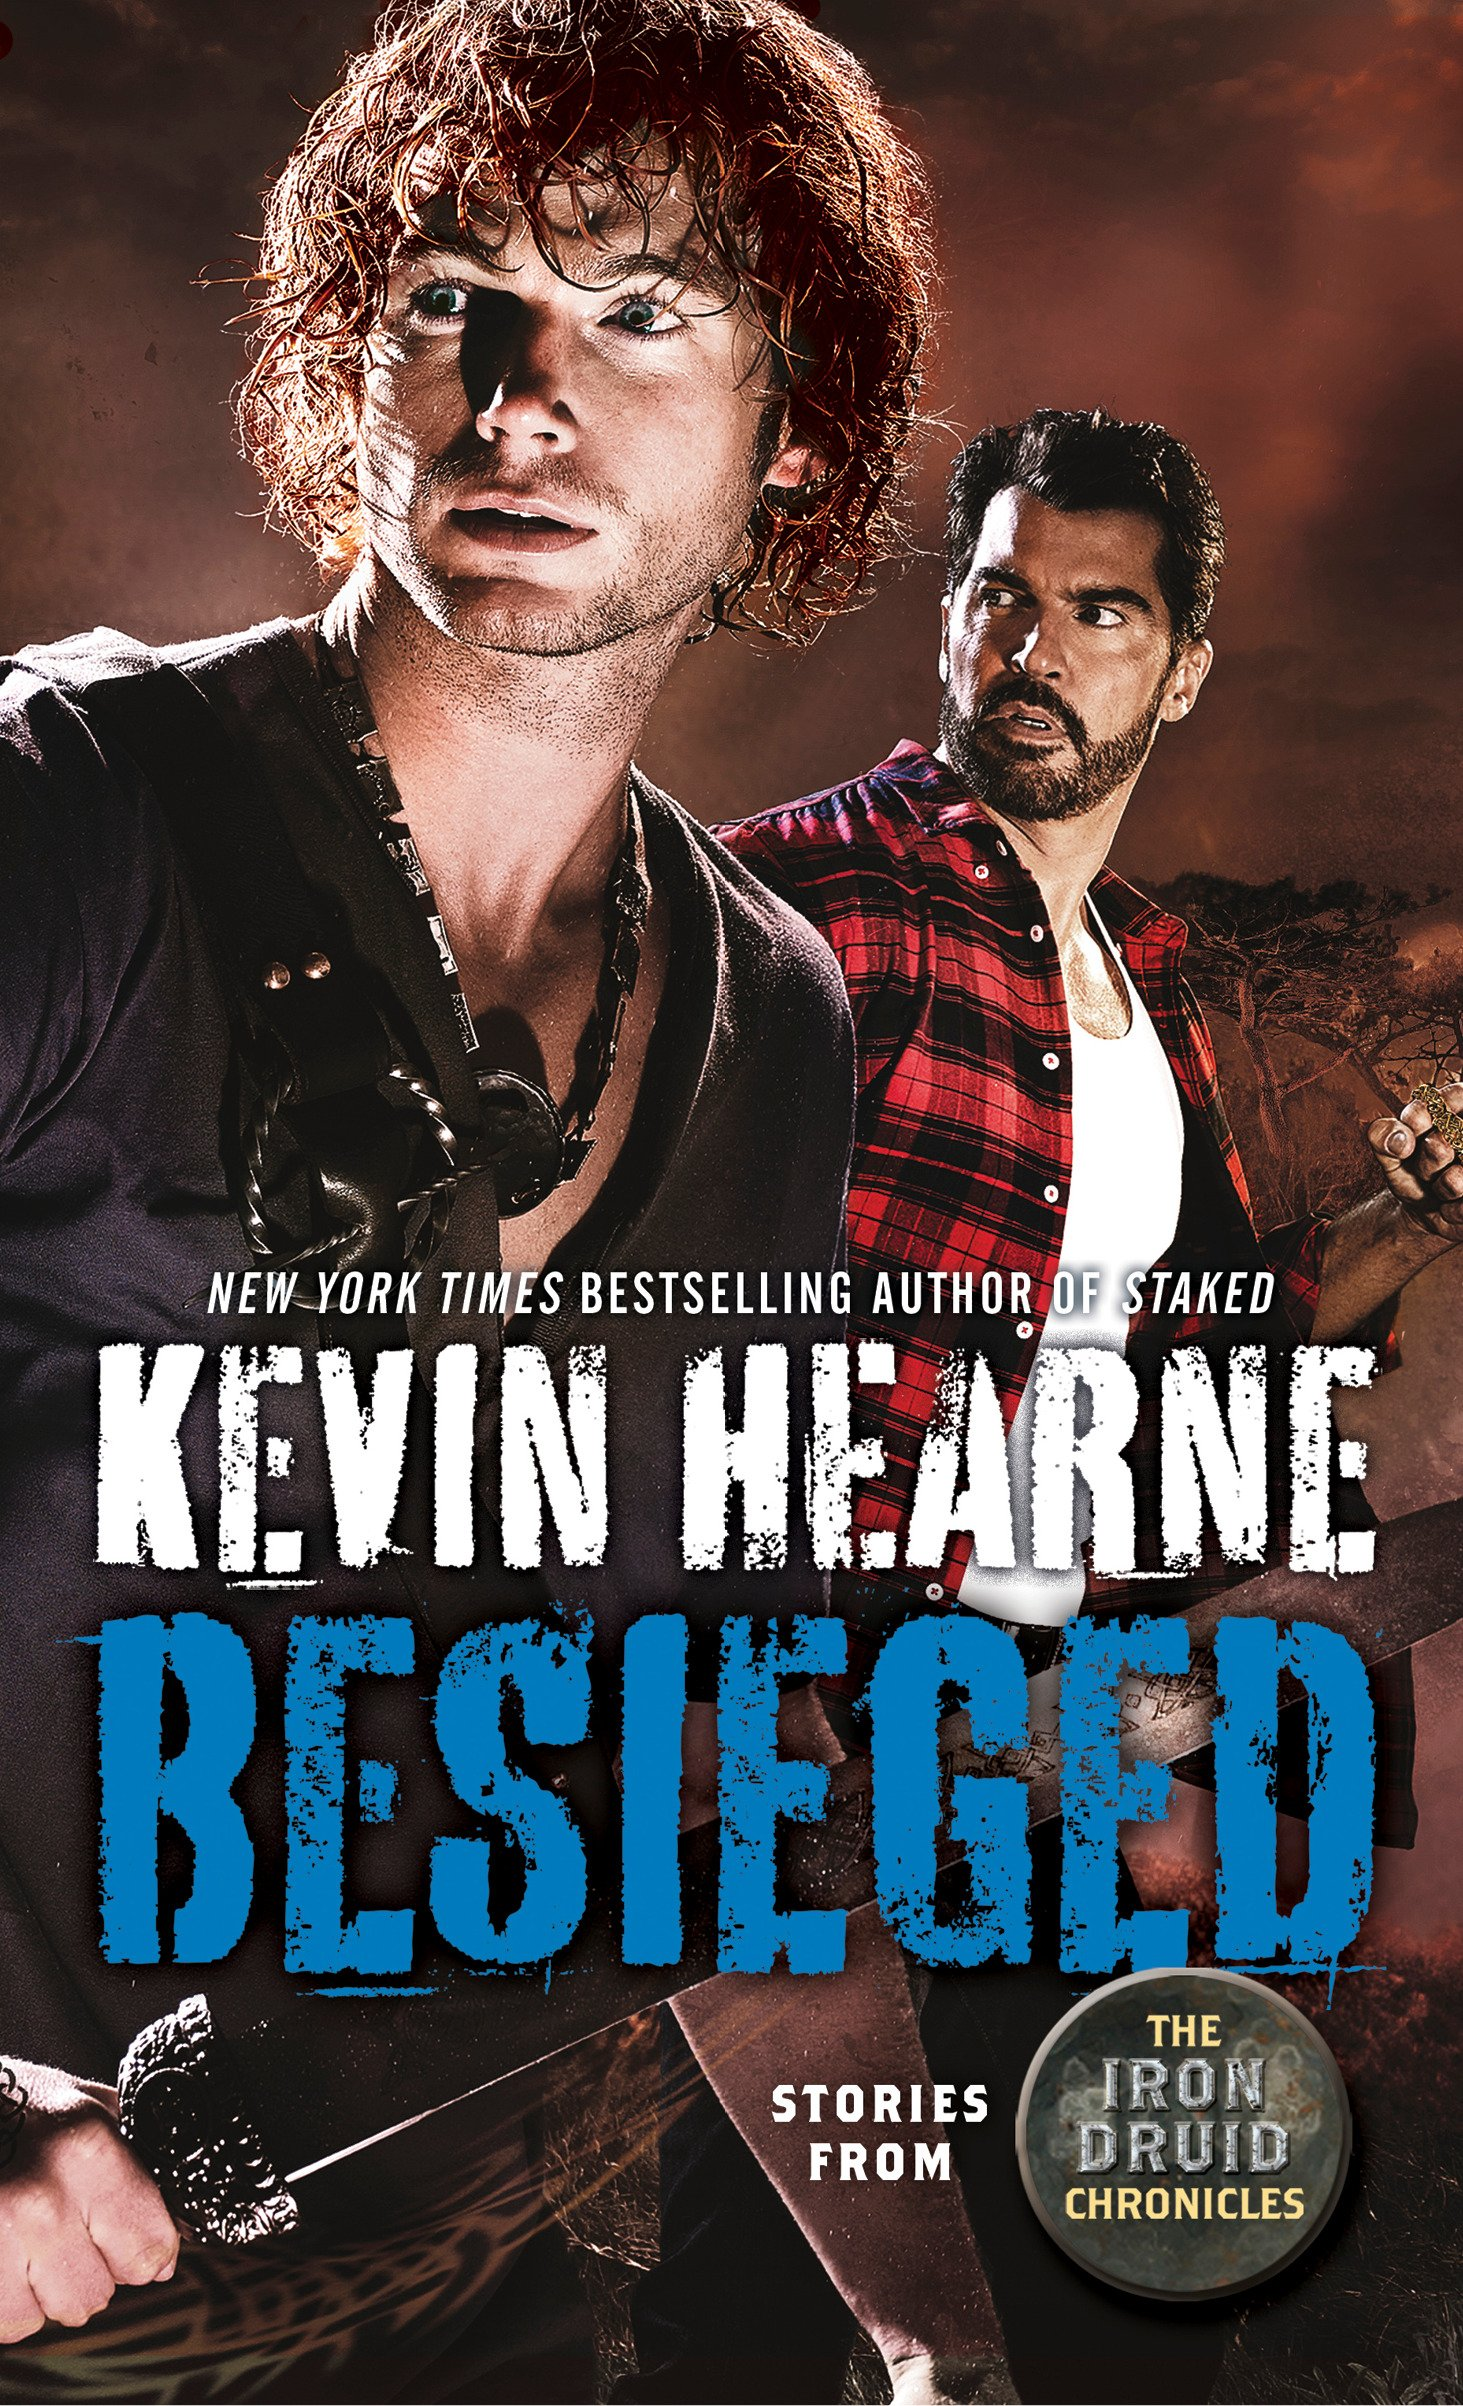 Besieged: Stories from The Iron Druid Chronicles por Kevin Hearne